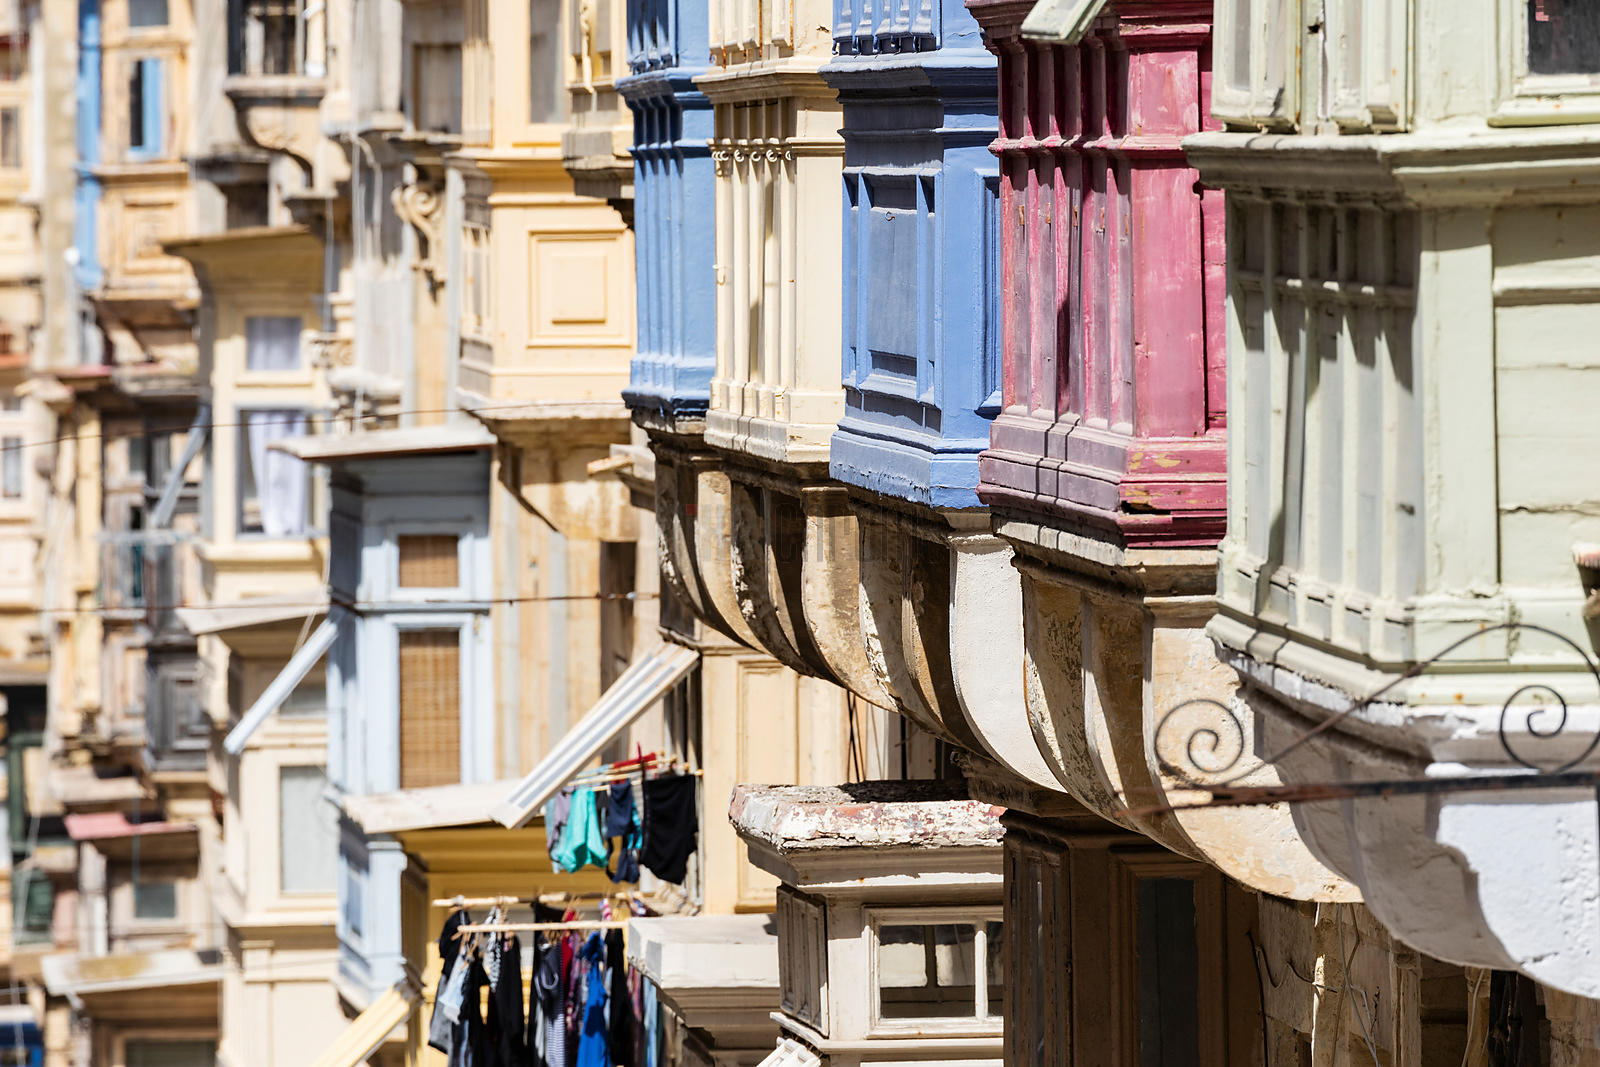 Houses and Maltese Balconies on Republic Street in Old Valletta